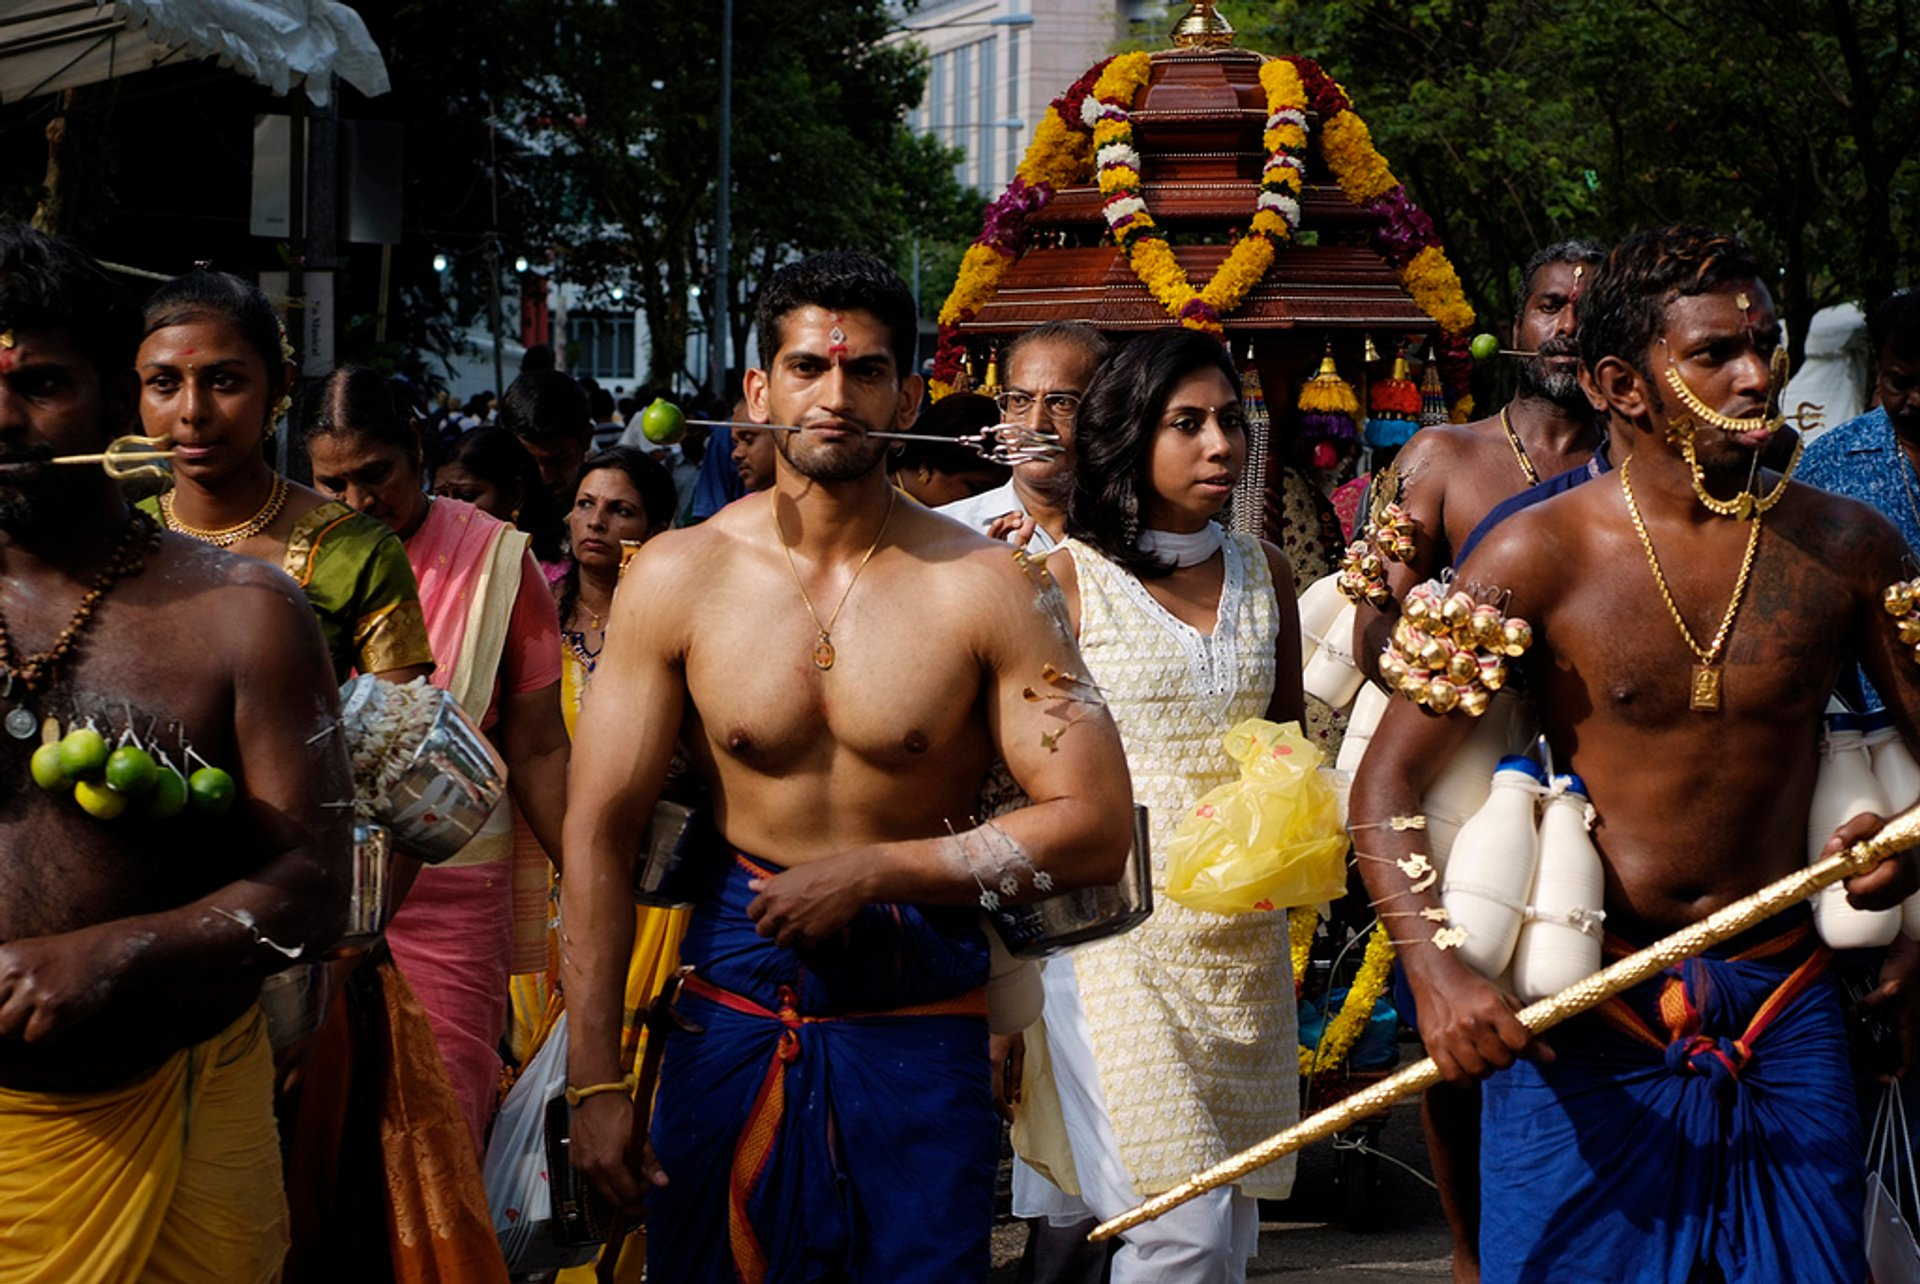 Thaipusam in Singapore - Best Season 2020